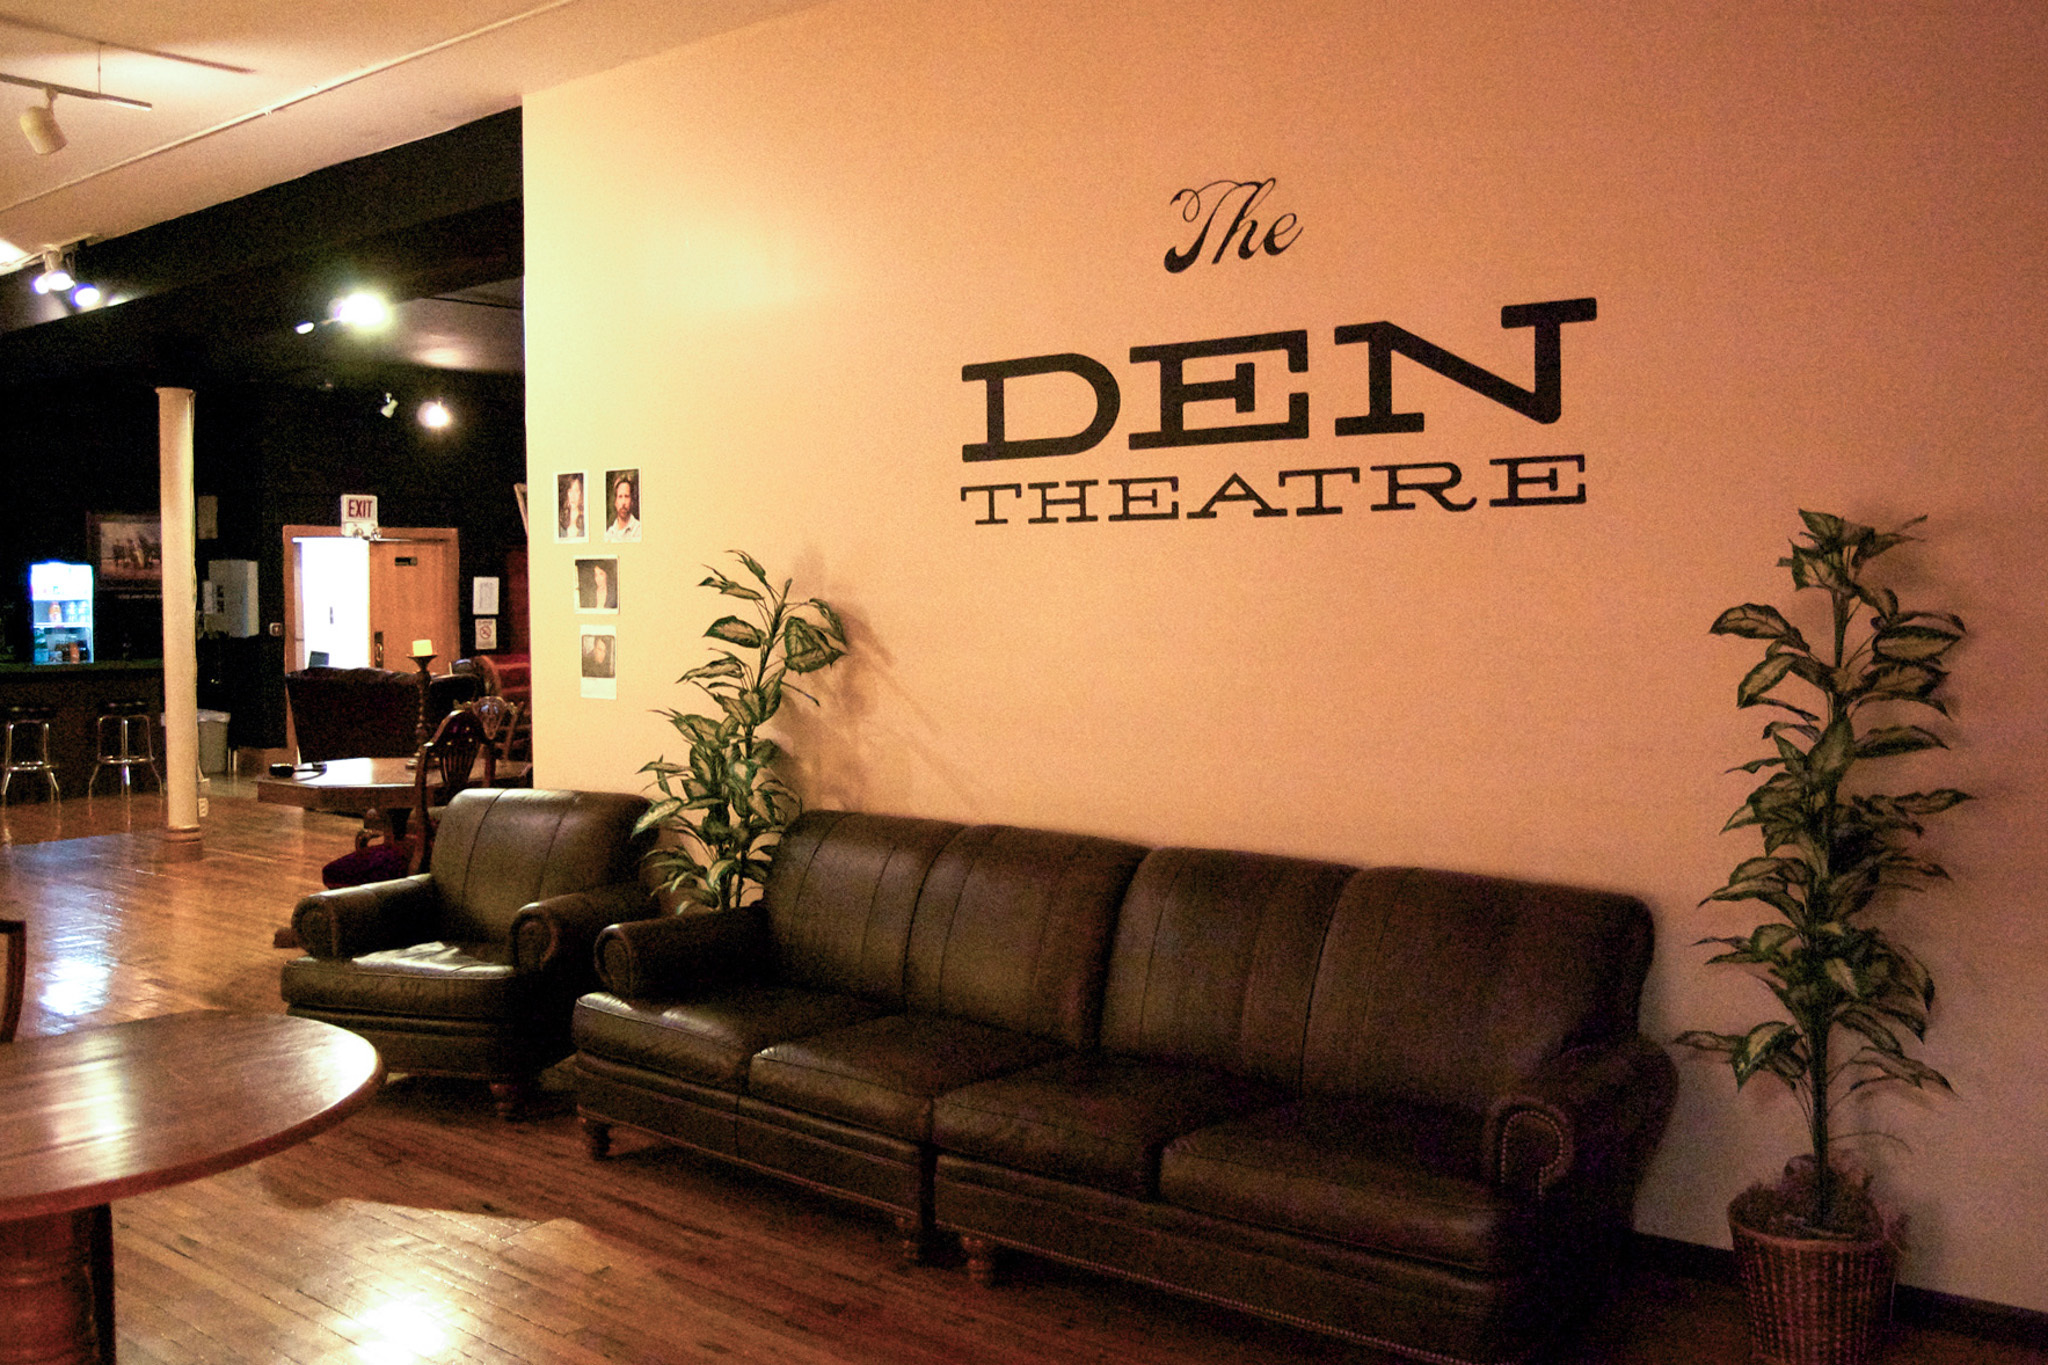 TheDenTheatre.venue.jpg